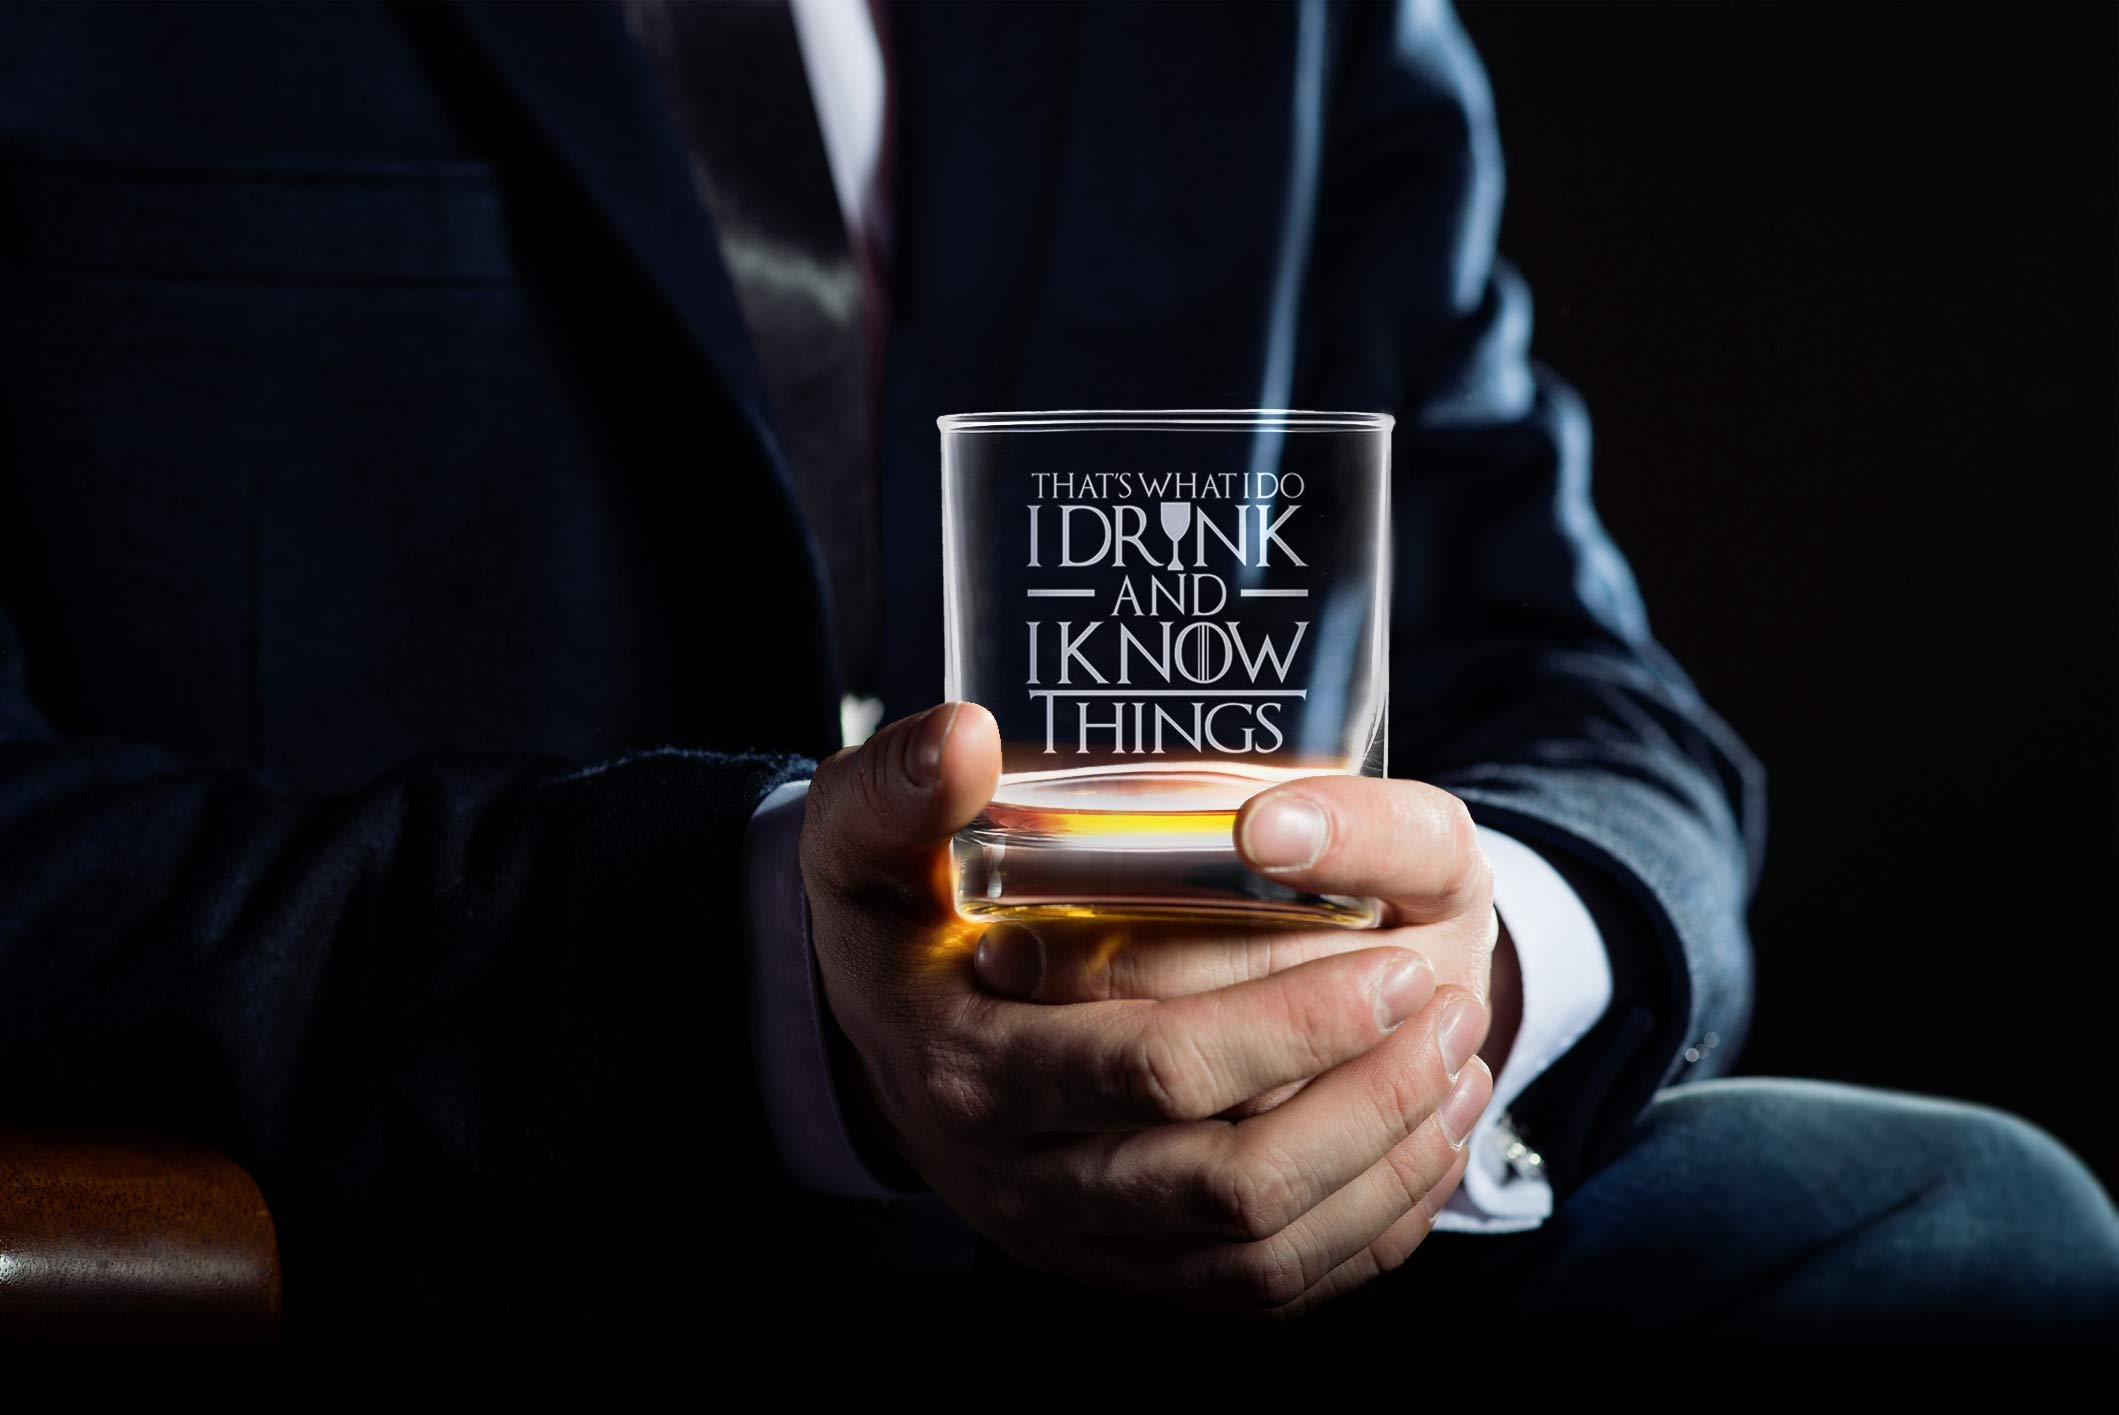 I Drink And I Know Things Highball Whiskey Glasses - Set of 2 - by FOLE (Image #5)